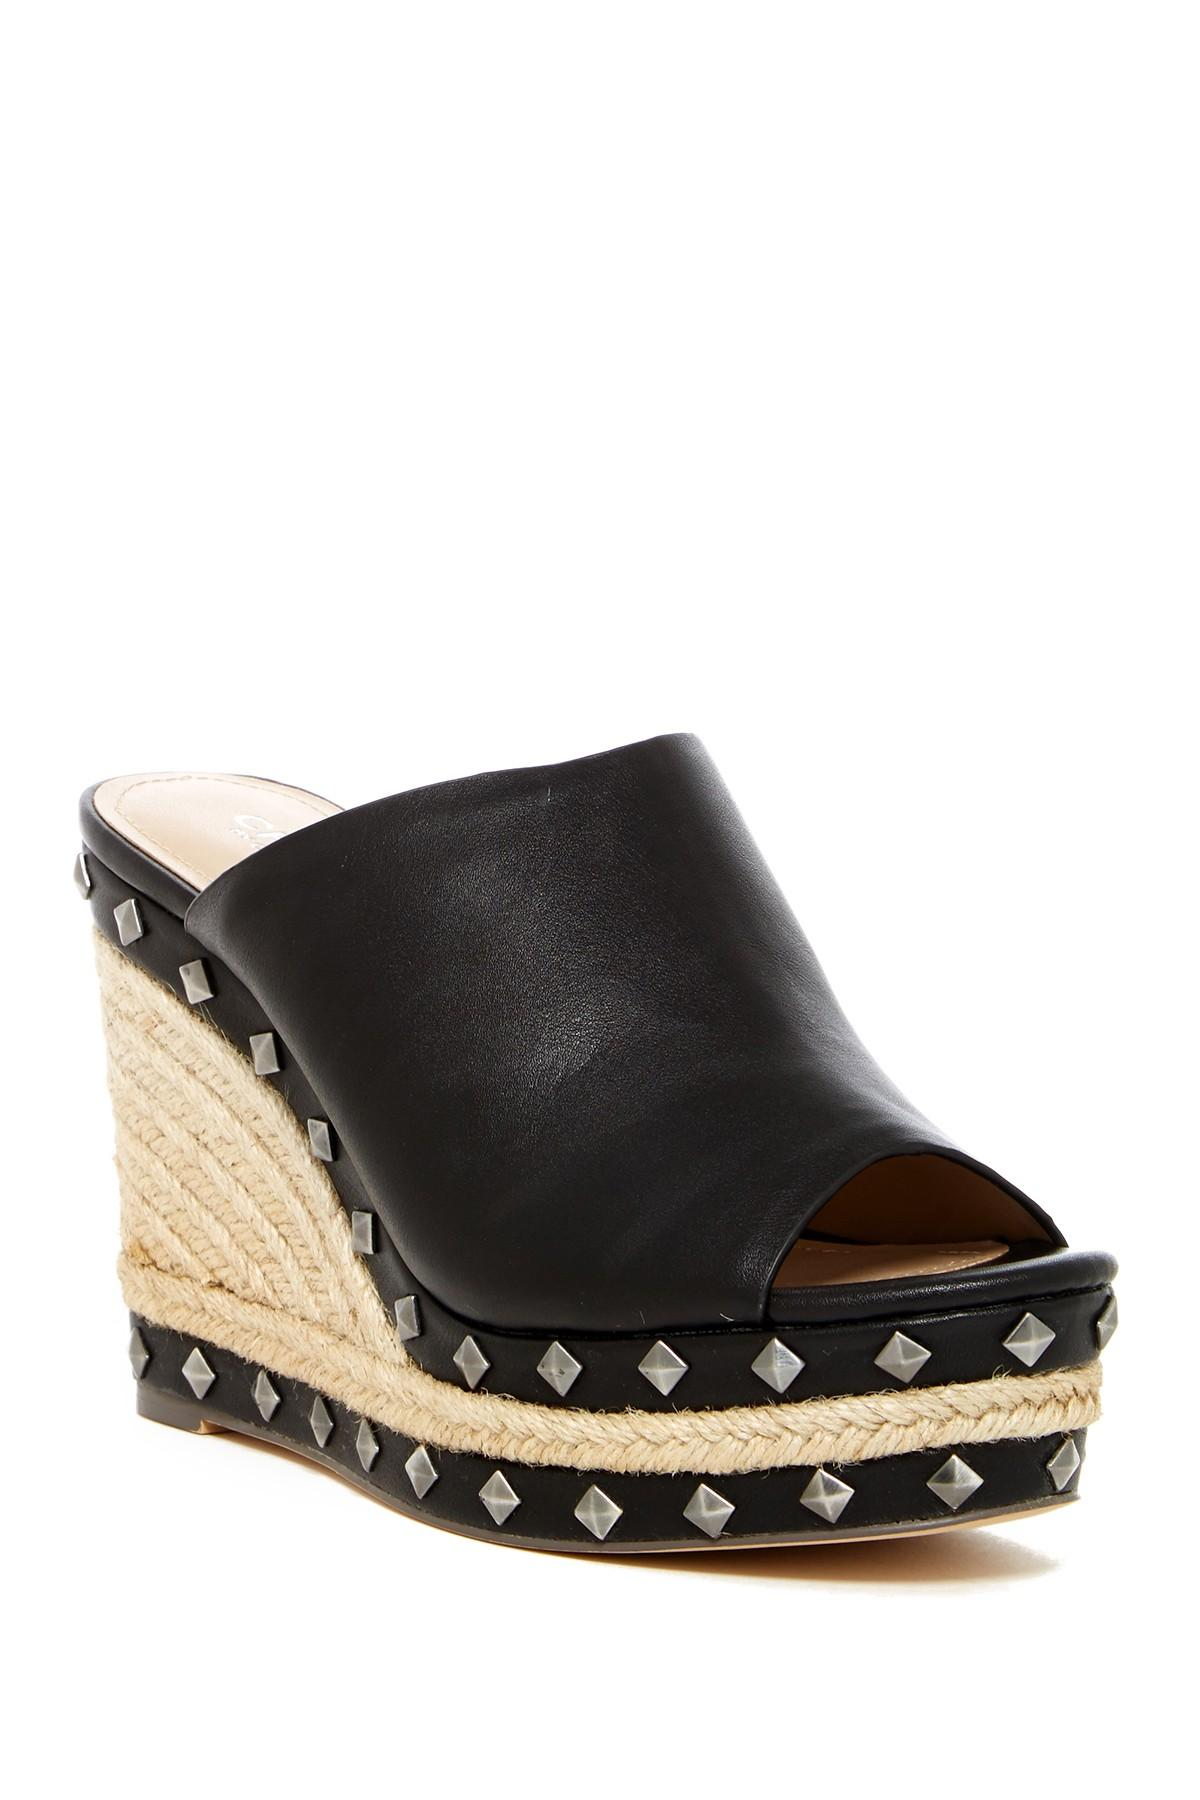 4525e68be55 Charles David - Black Lisbon Platform Wedge Sandal (women) - Lyst